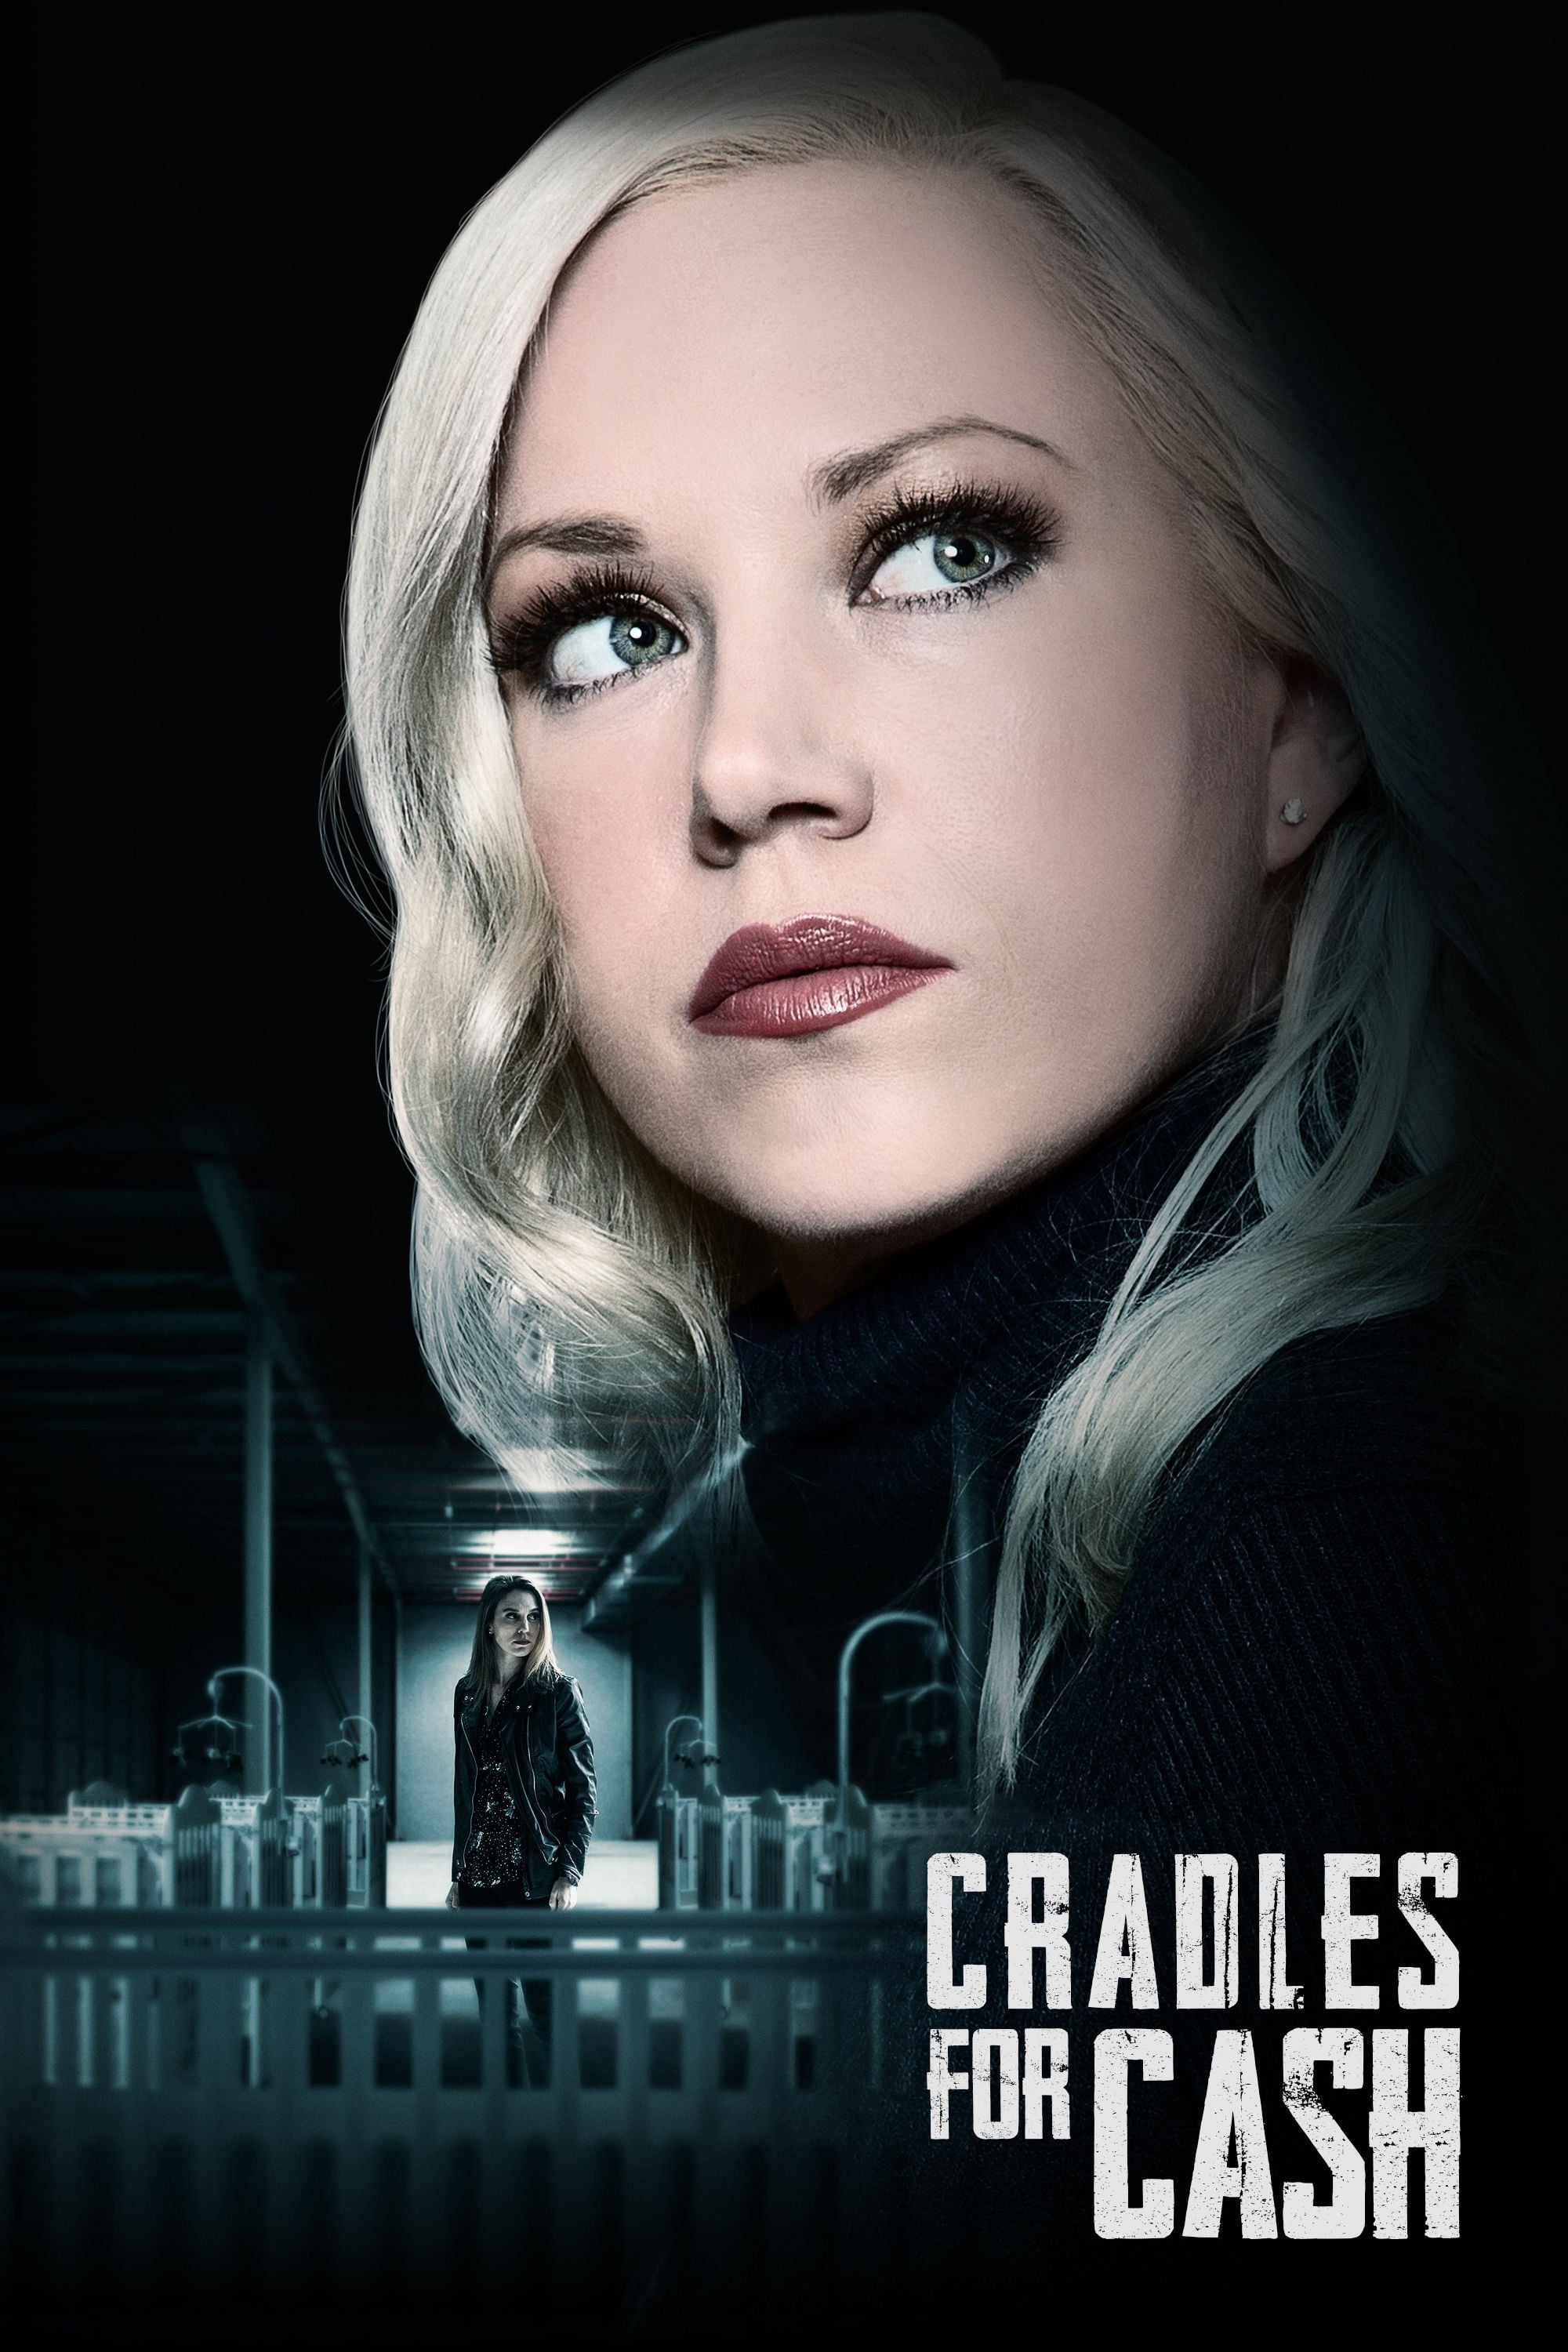 Cradles for Cash (2019)